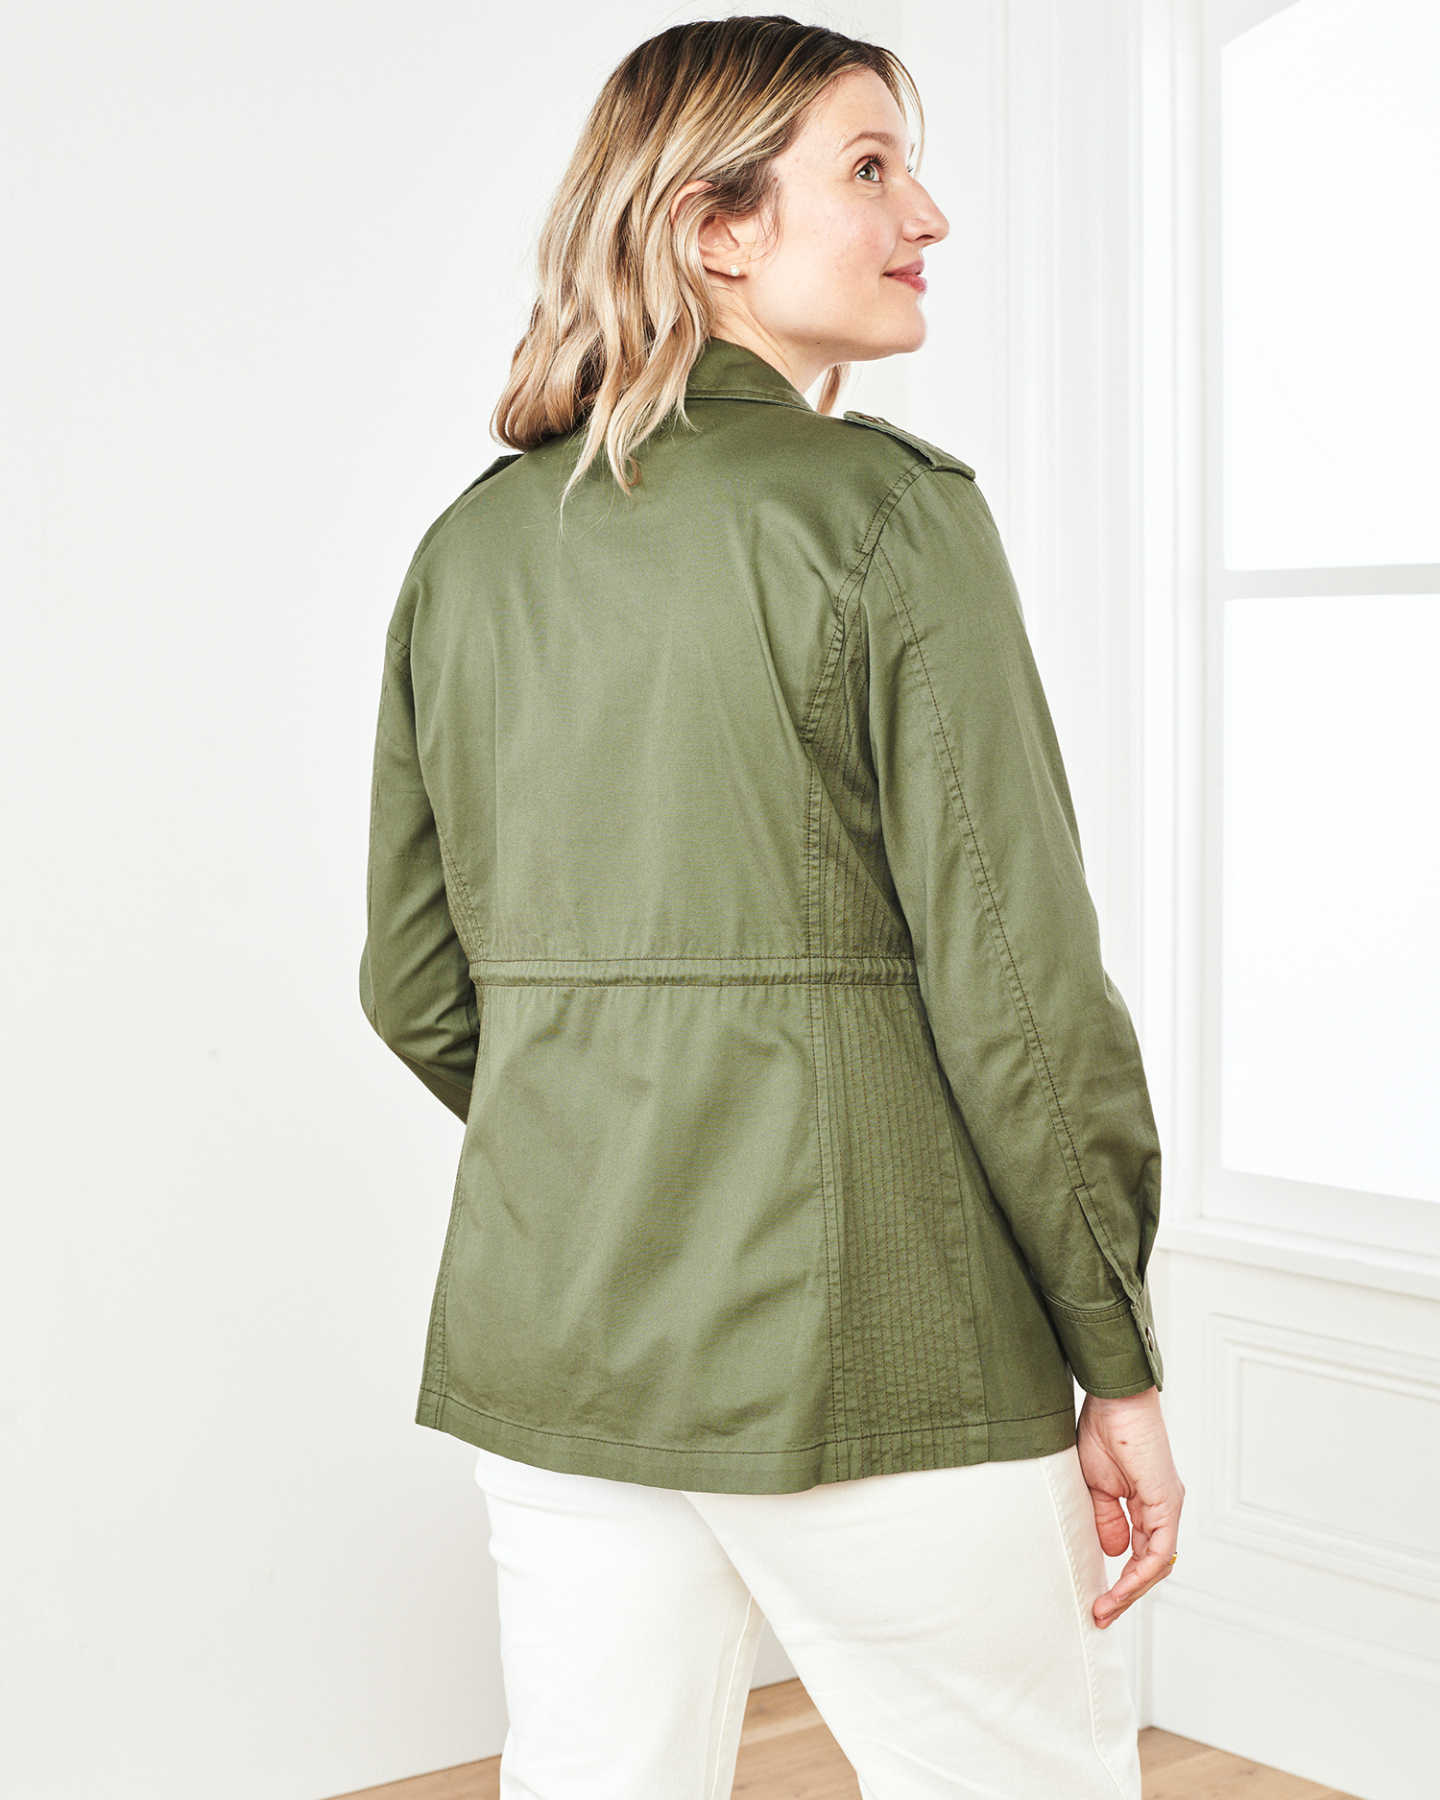 Cotton Twill Utility Jacket - Olive - 7